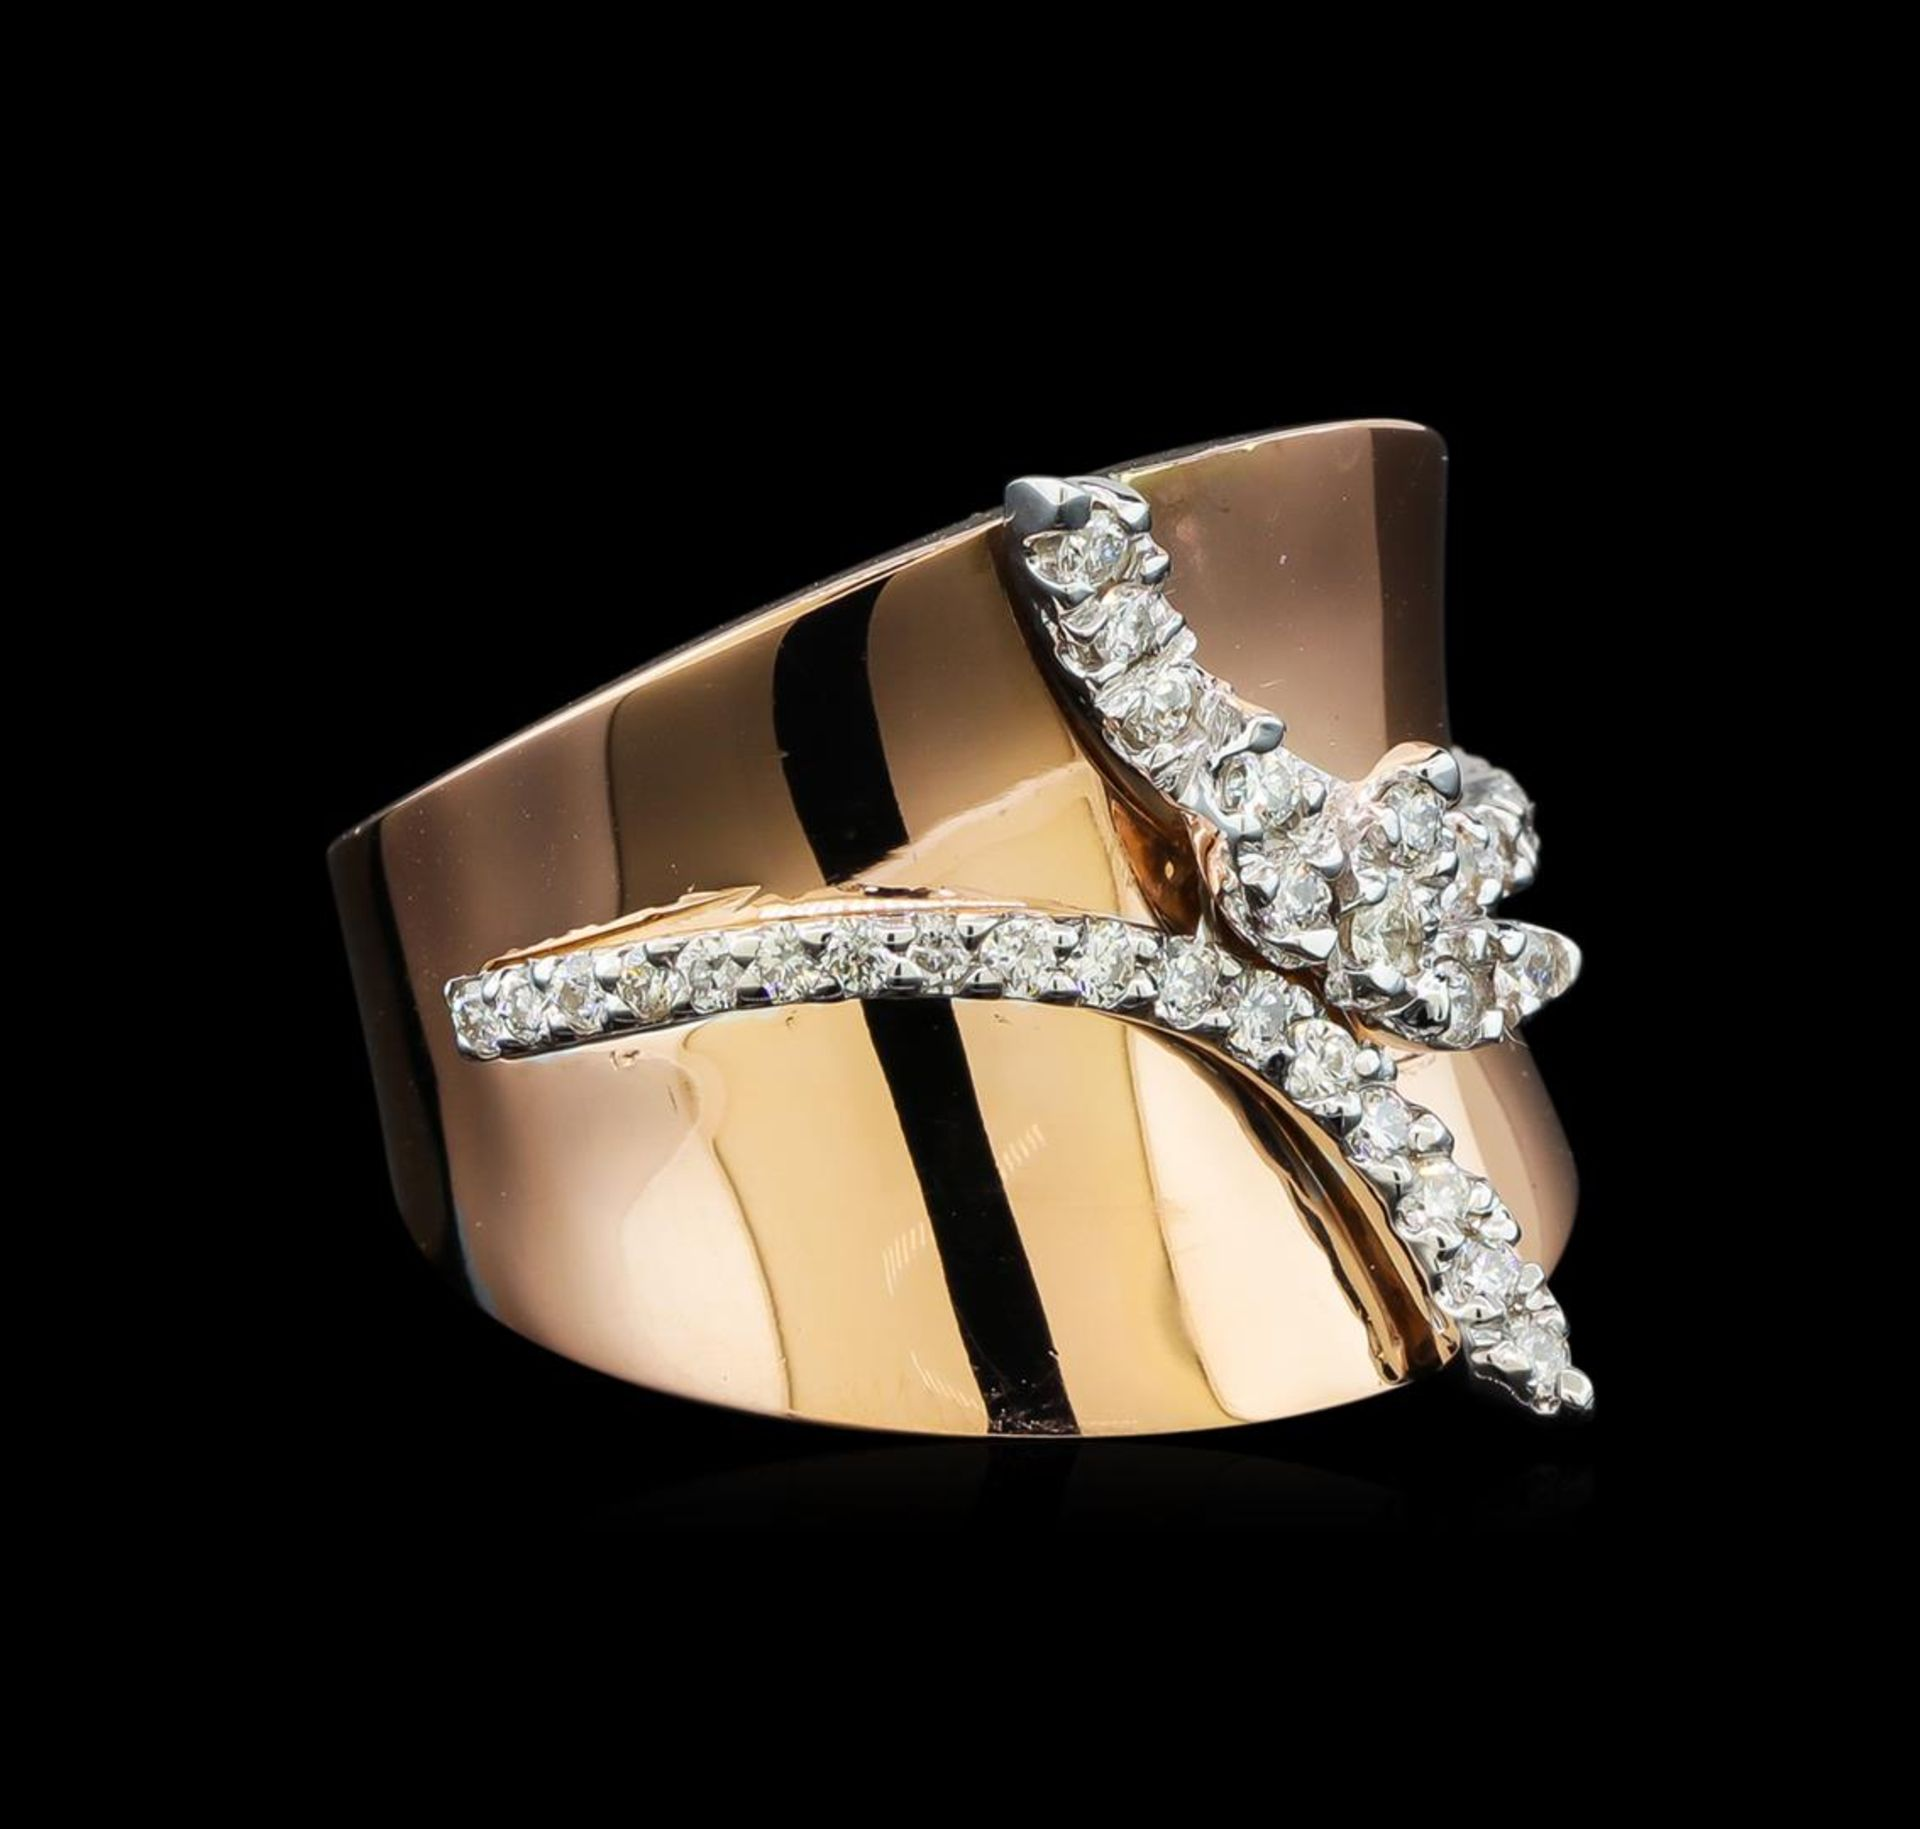 0.45ctw Diamond Ring - 14KT Two Tone Gold